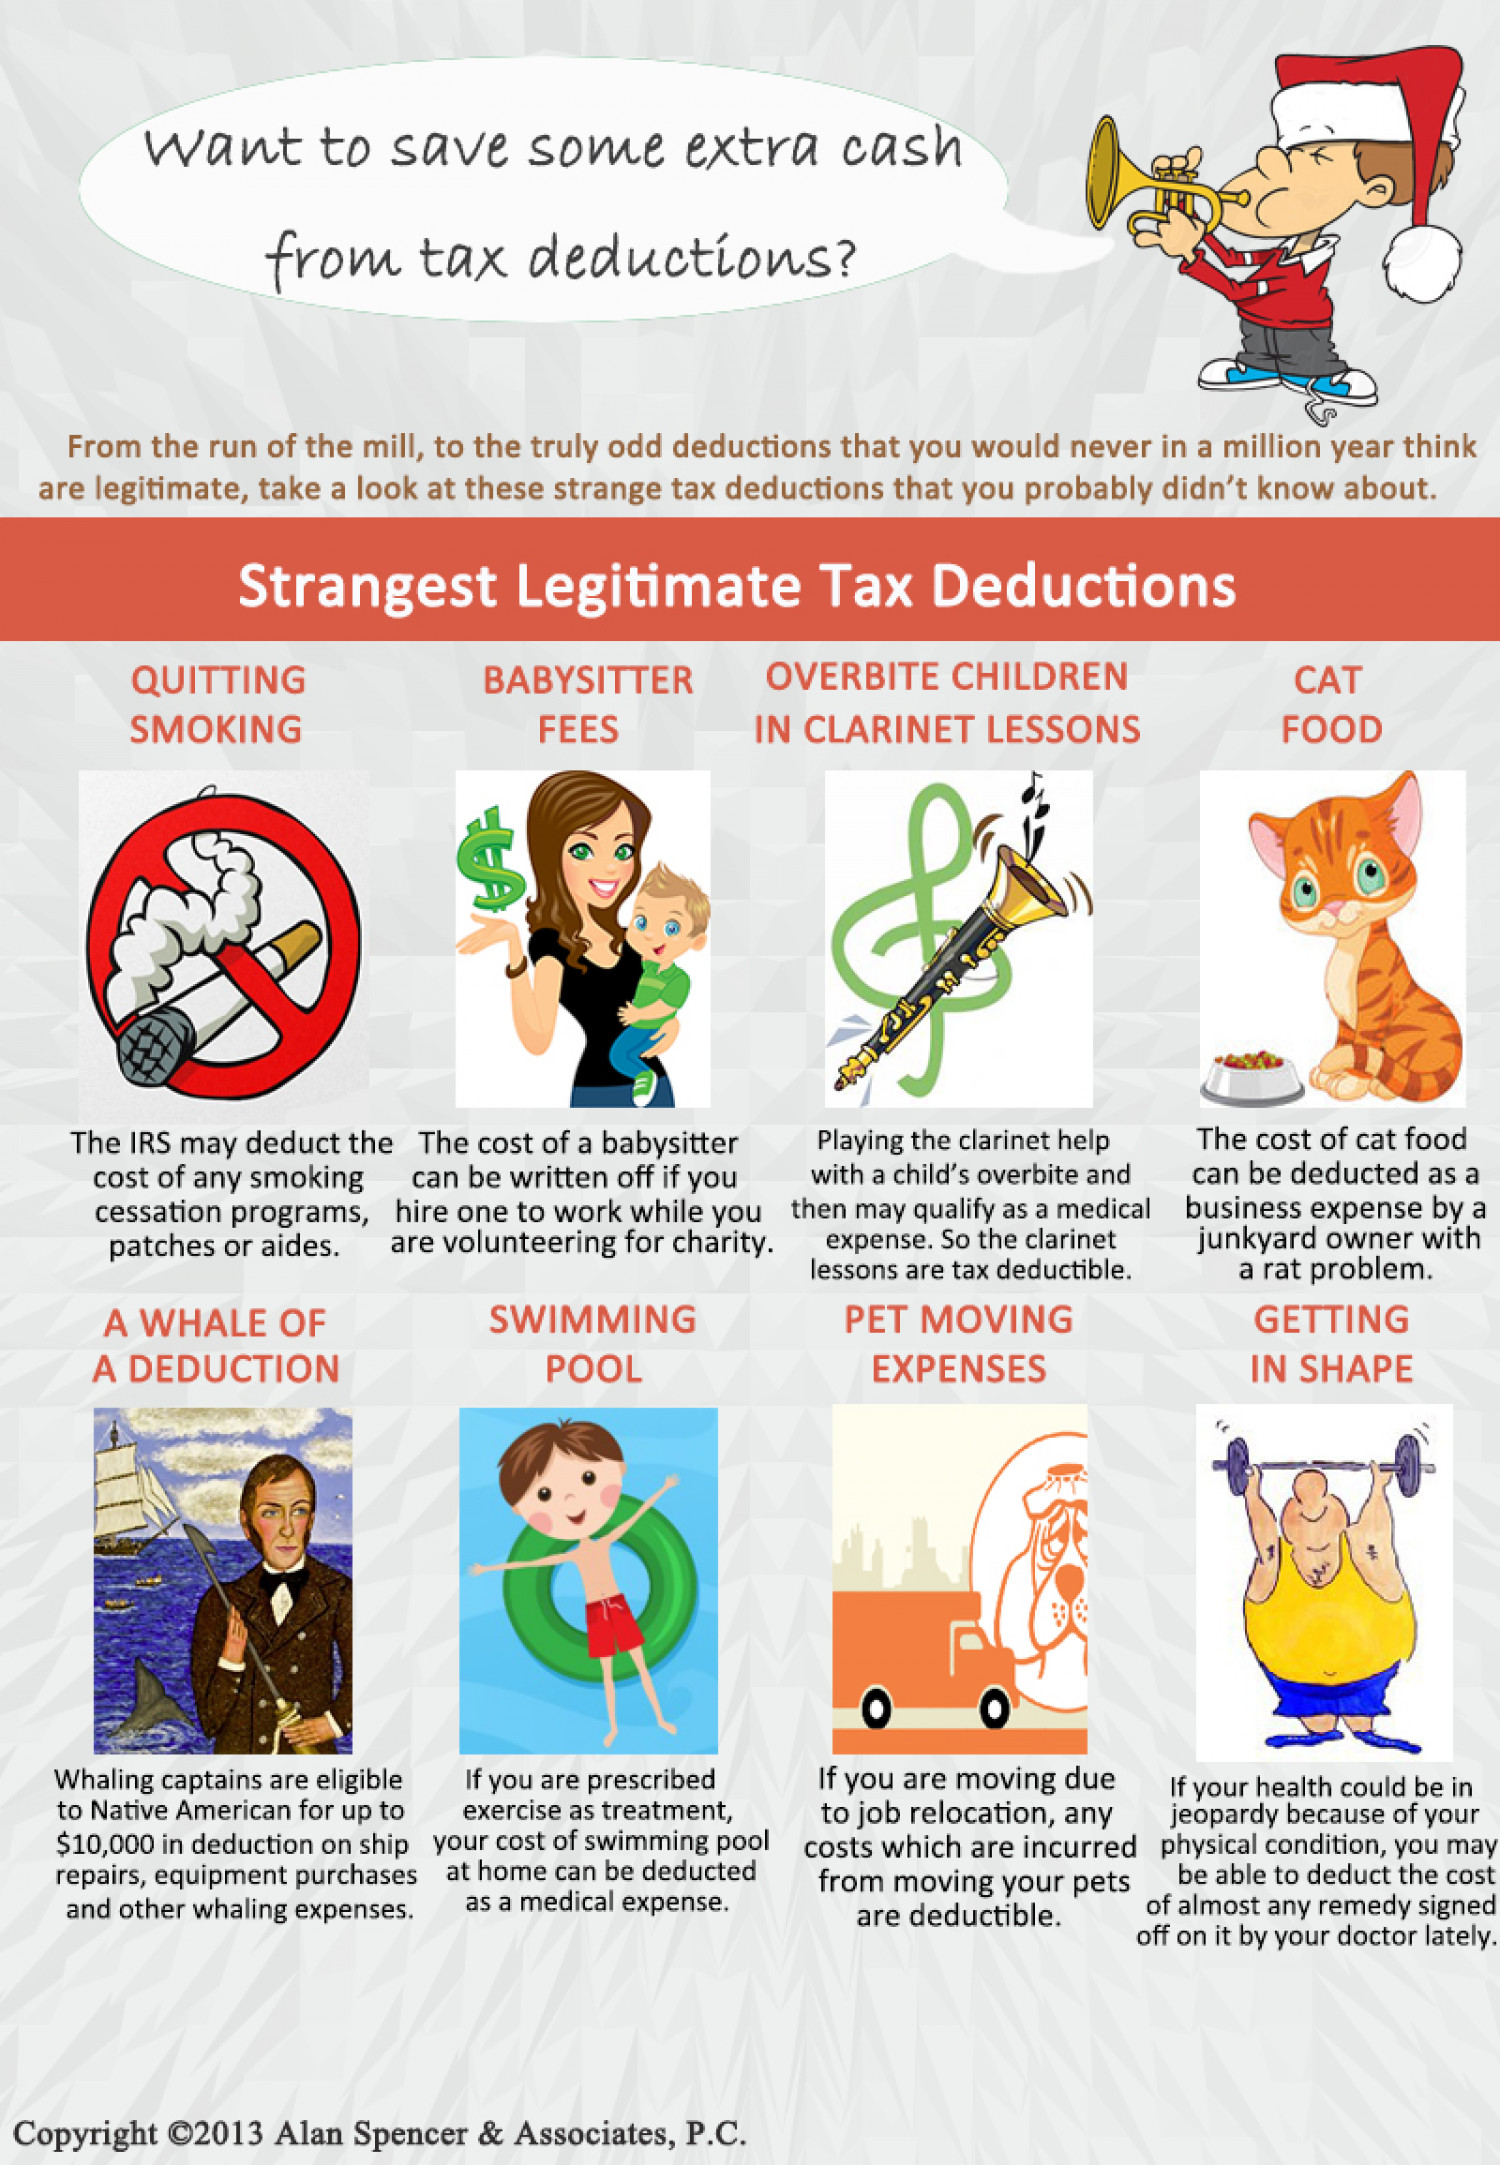 Strangest legitimate tax deductions Infographic